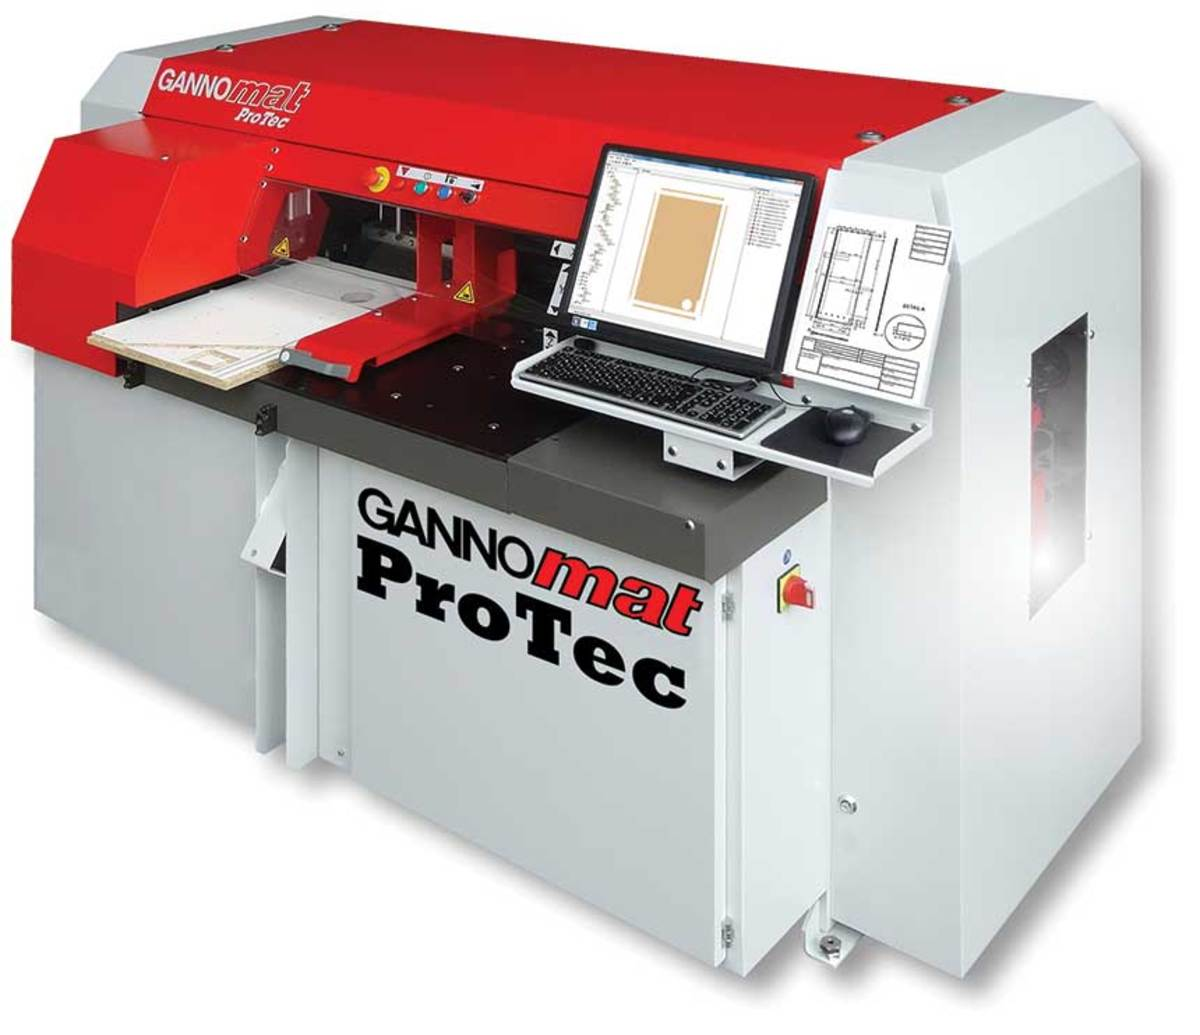 The ProTec can be programmed at the machine and unloaded at the front or rear.